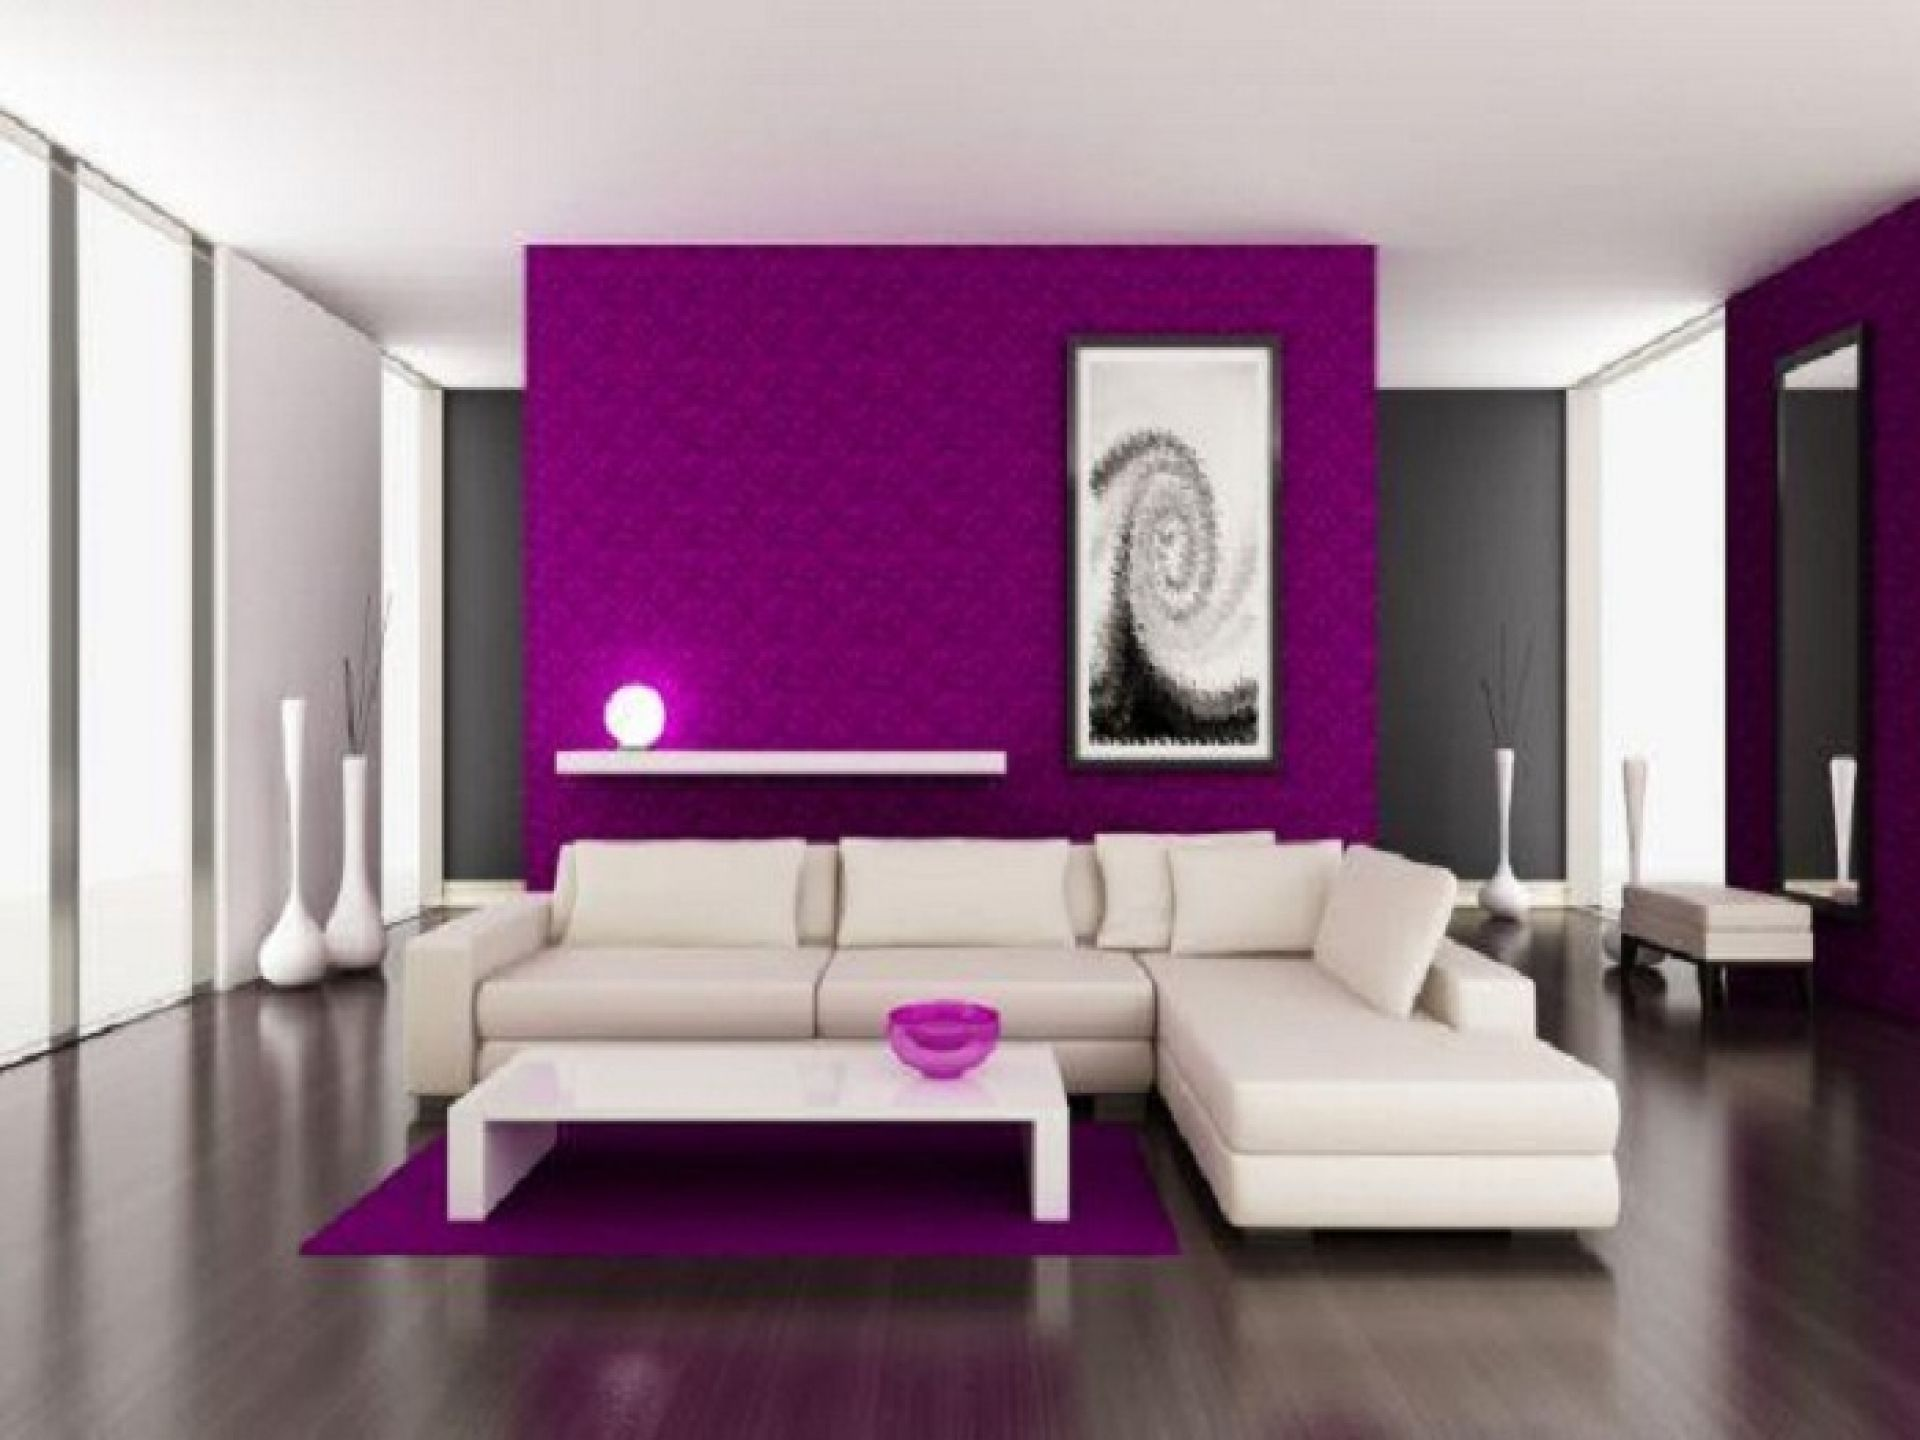 High Quality [Featured] : Minimalist Living Room Decor Ideas With Purple Color Along  With White Comfy Coush With Cushion Coffee Table And Dark Laminating Floor  With ... Part 28